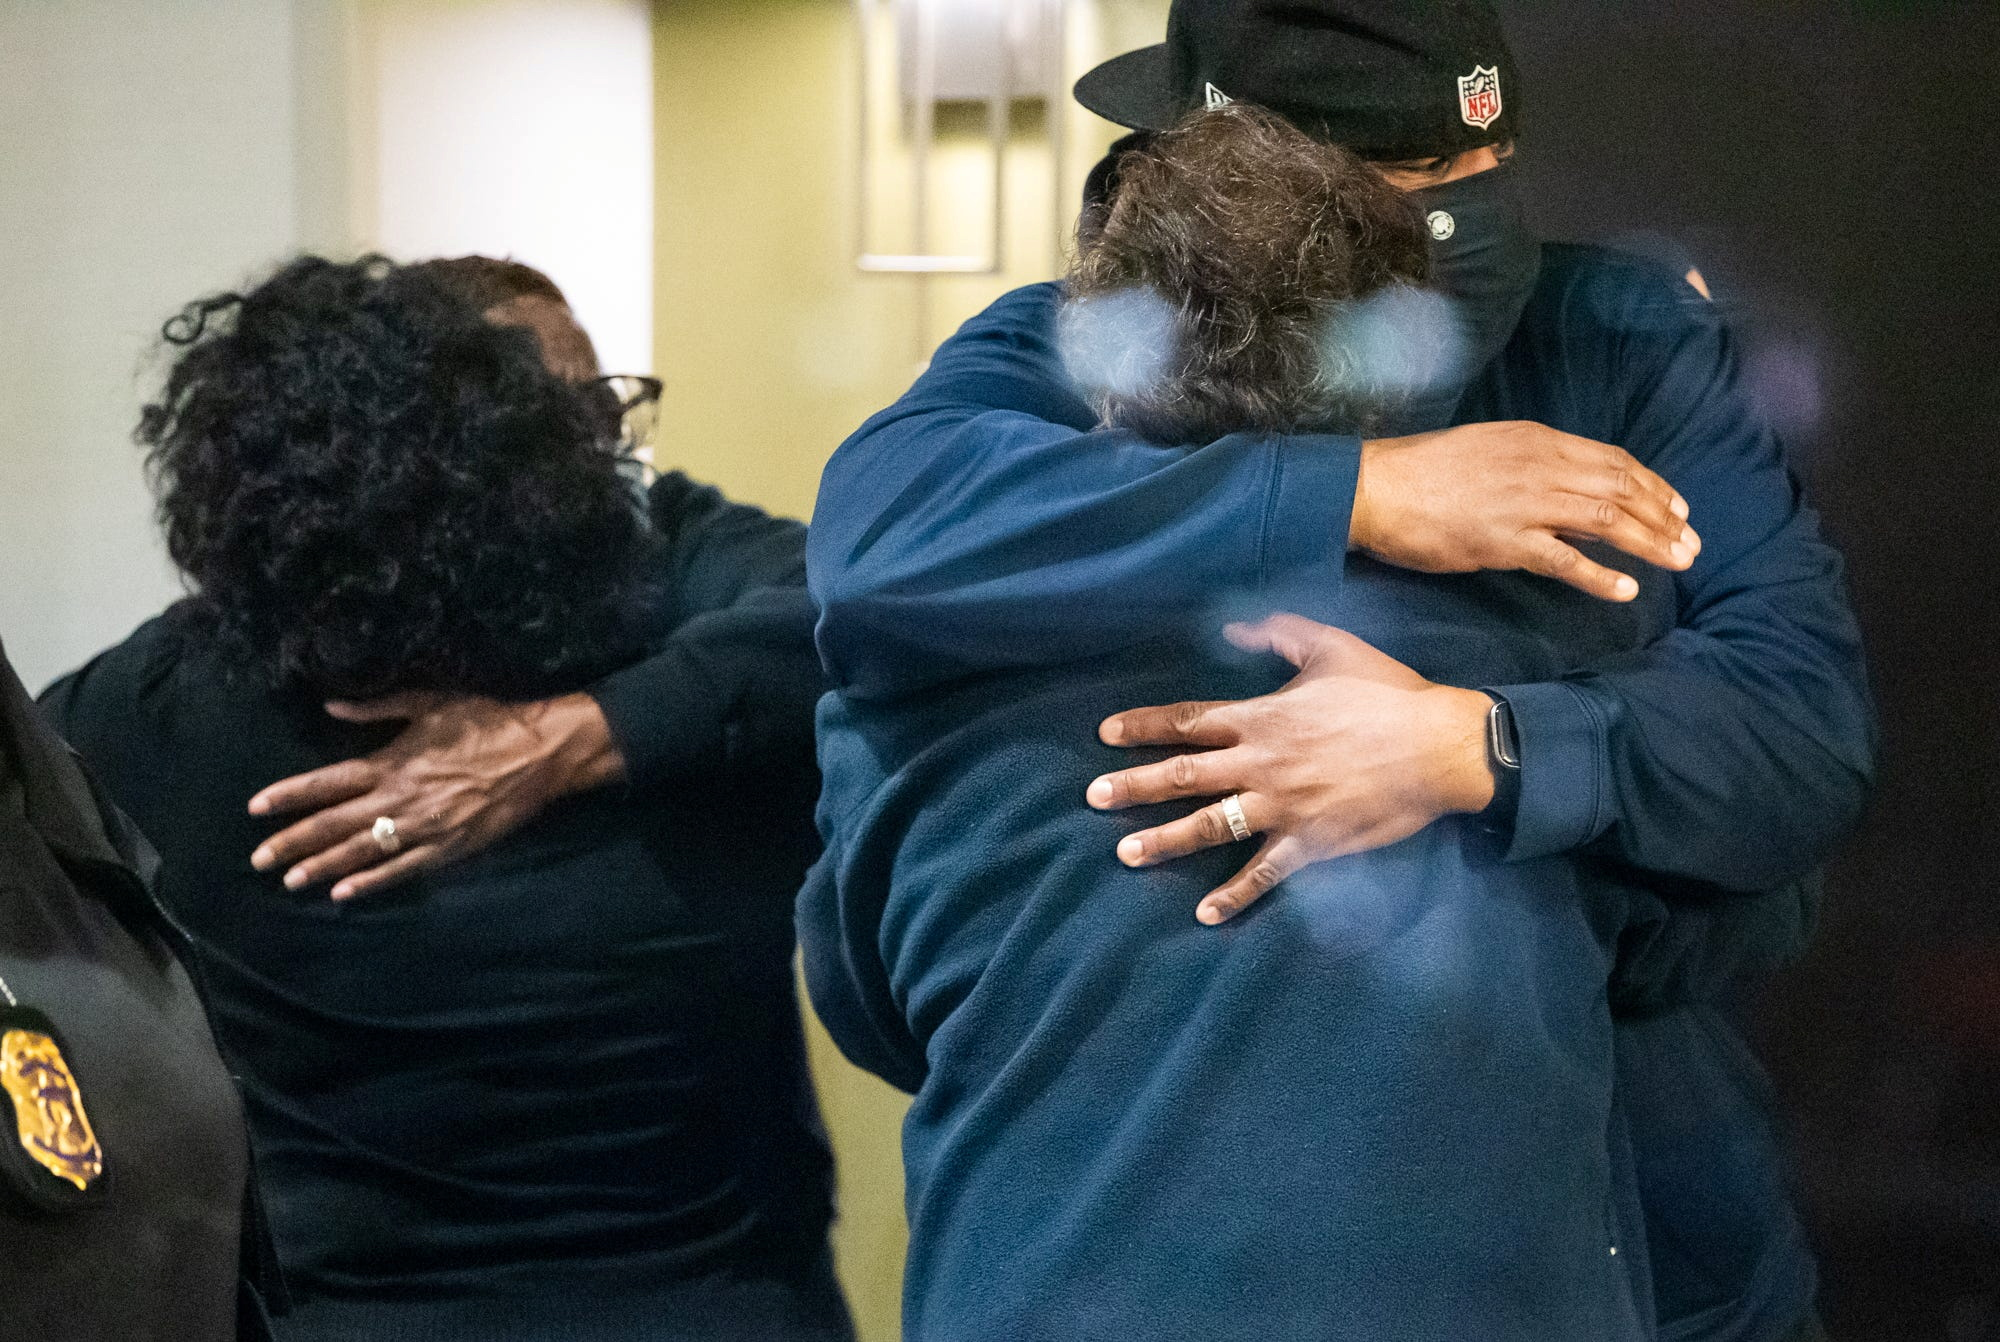 People embrace after learning that their loved one was safe after a mass casualty shooting at the FedEx facility in Indianapolis, Indiana, U.S. April 16, 2021. Mykal McEldowney/IndyStar/USA Today Network via REUTERS.